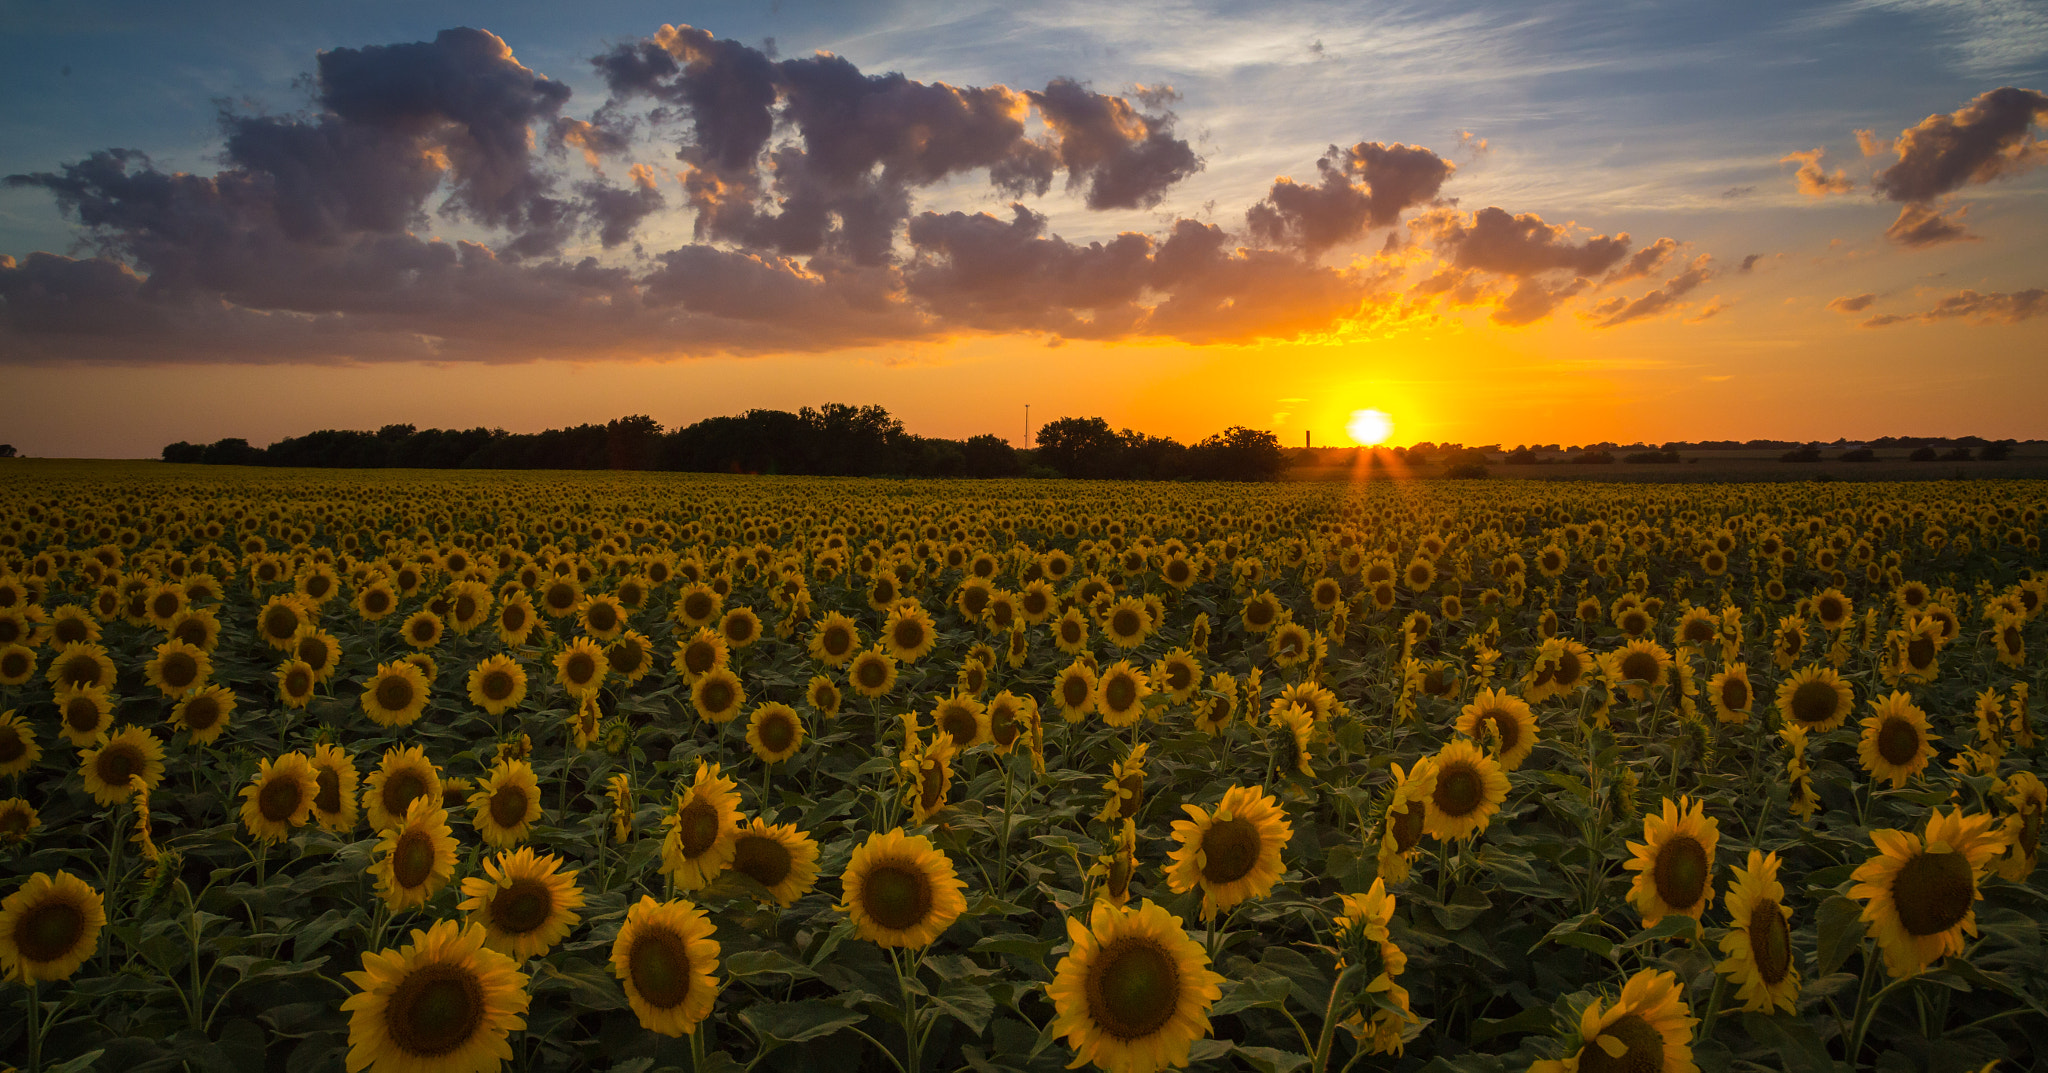 Photograph Sunset over Sunflowers by Kelly Phillips on 500px